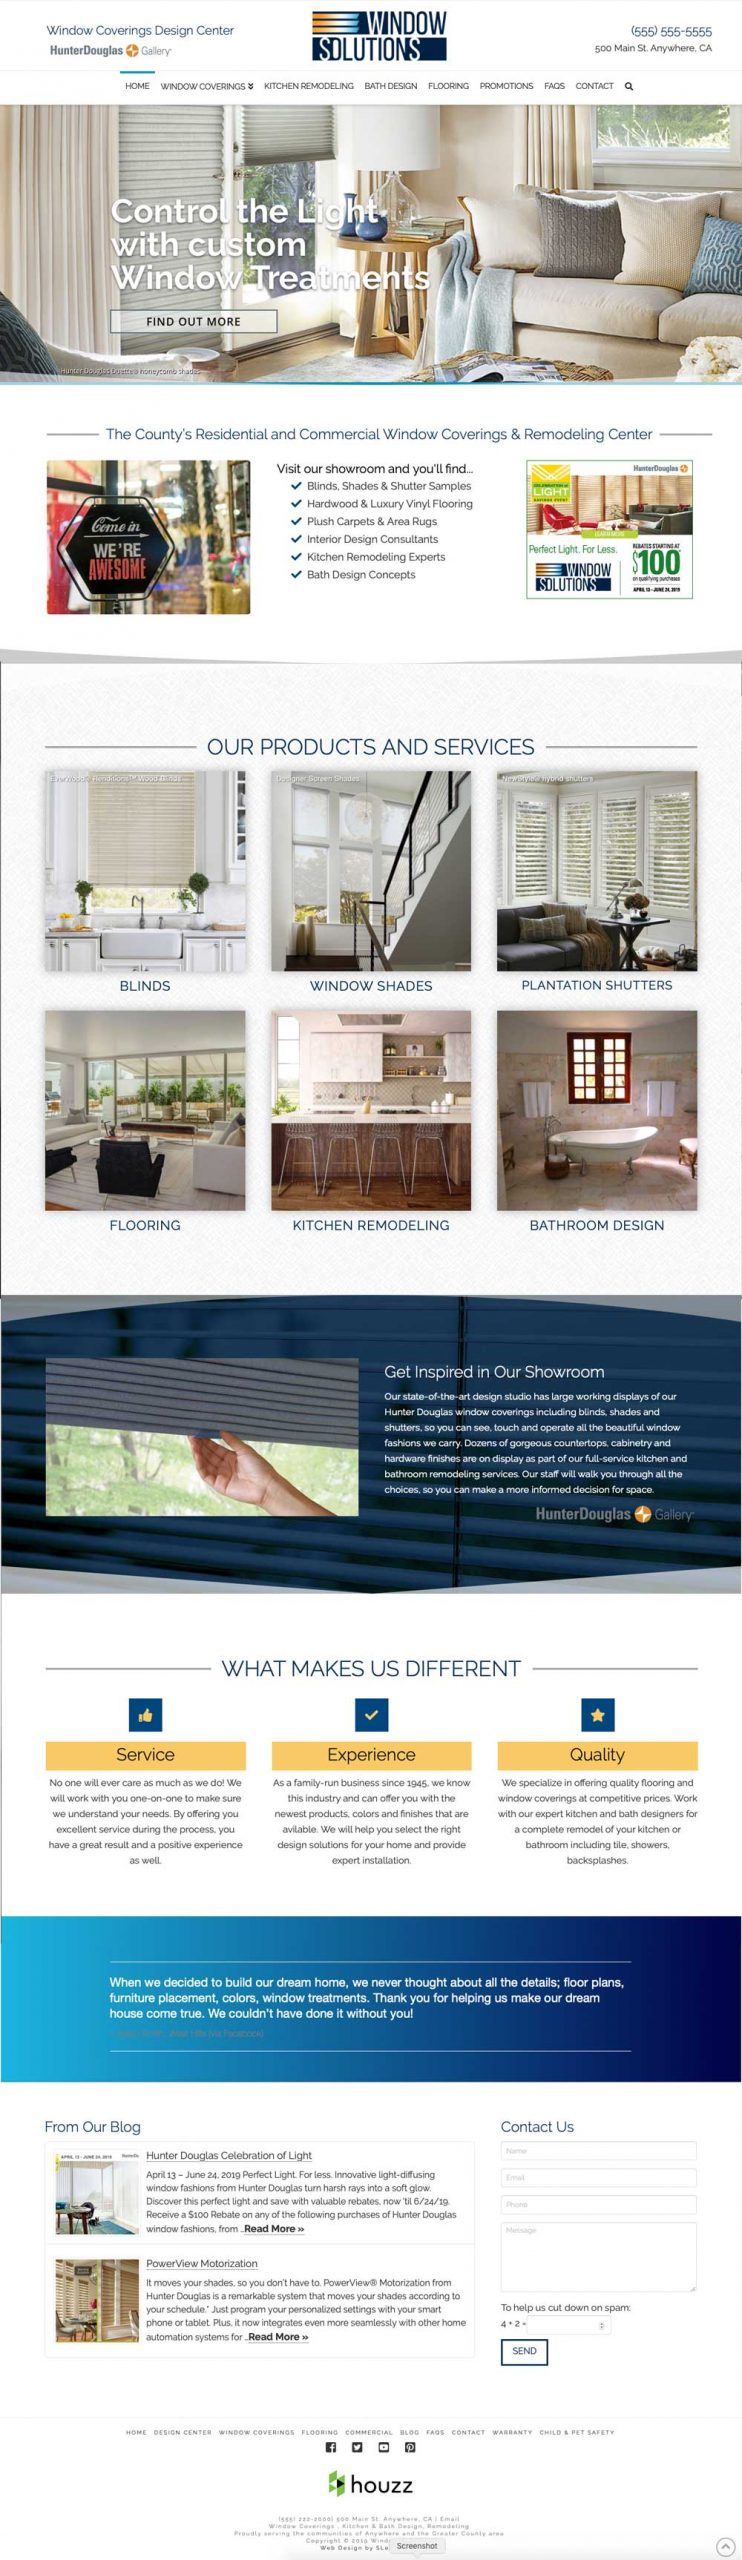 Custom Home Page showing your products and services, distinctives, testimonials, and images.